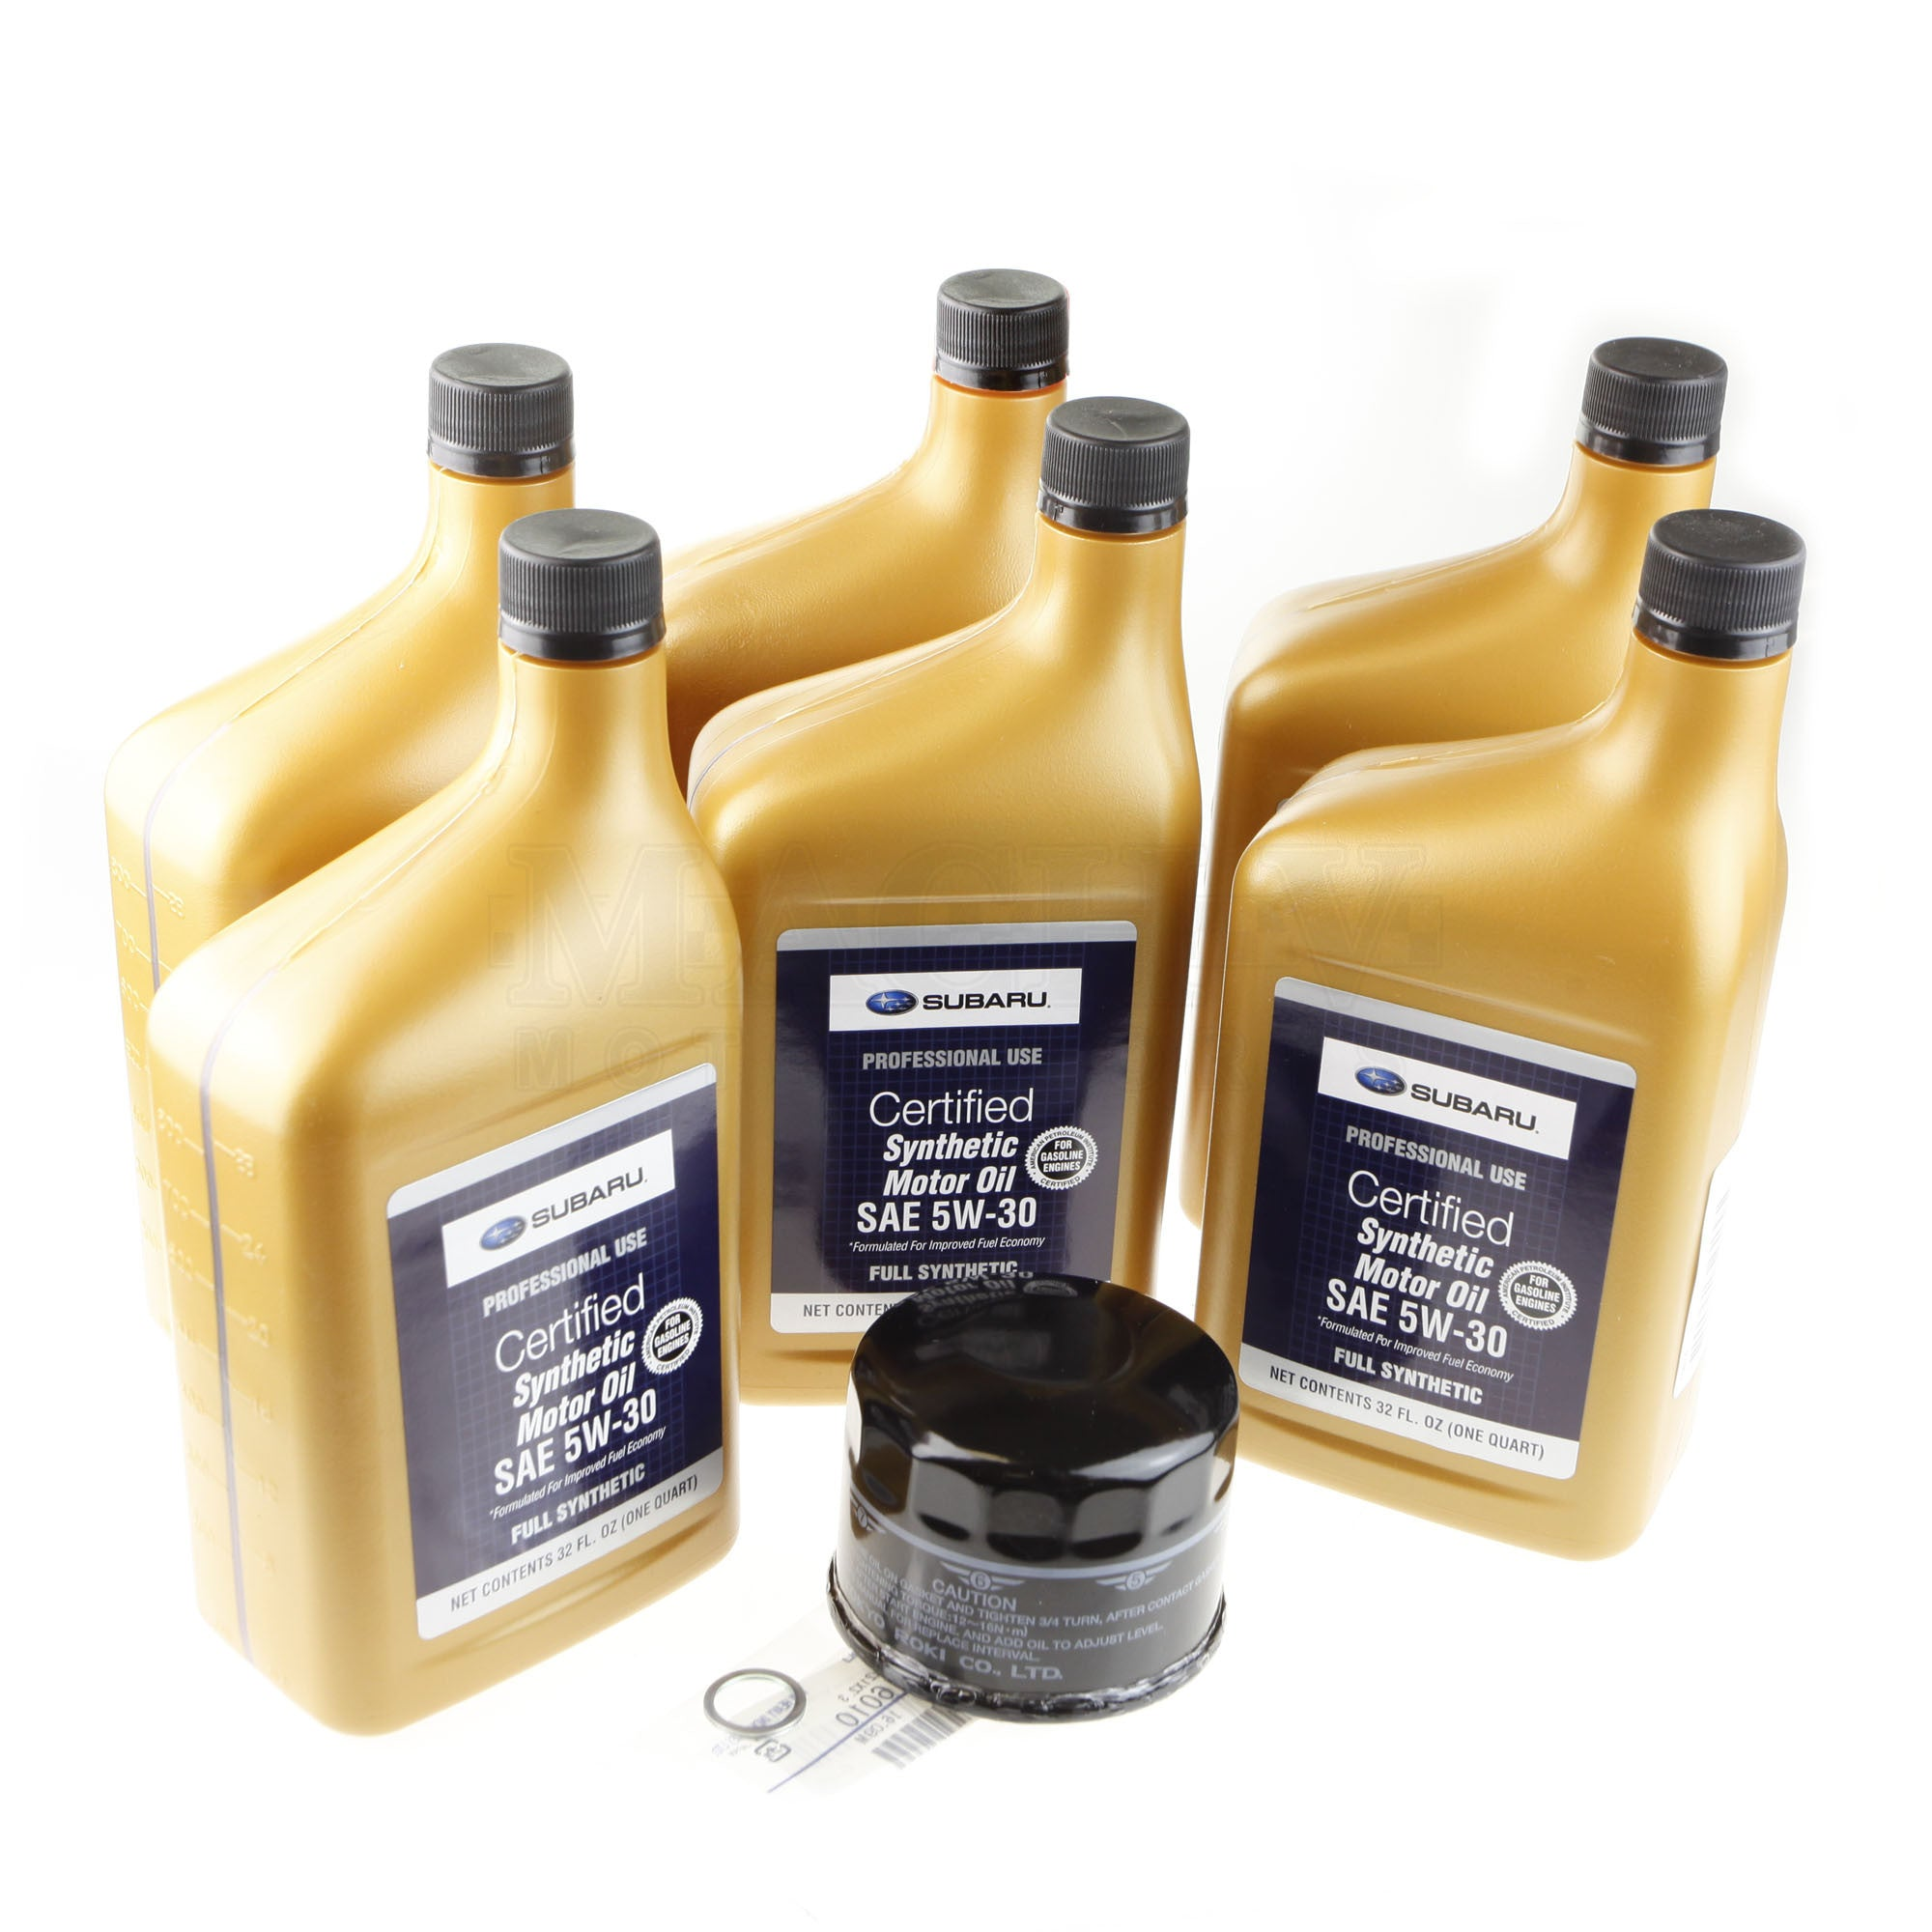 Subaru Oil Change Kits | Subaru Synthetic Motor Oil | Auto